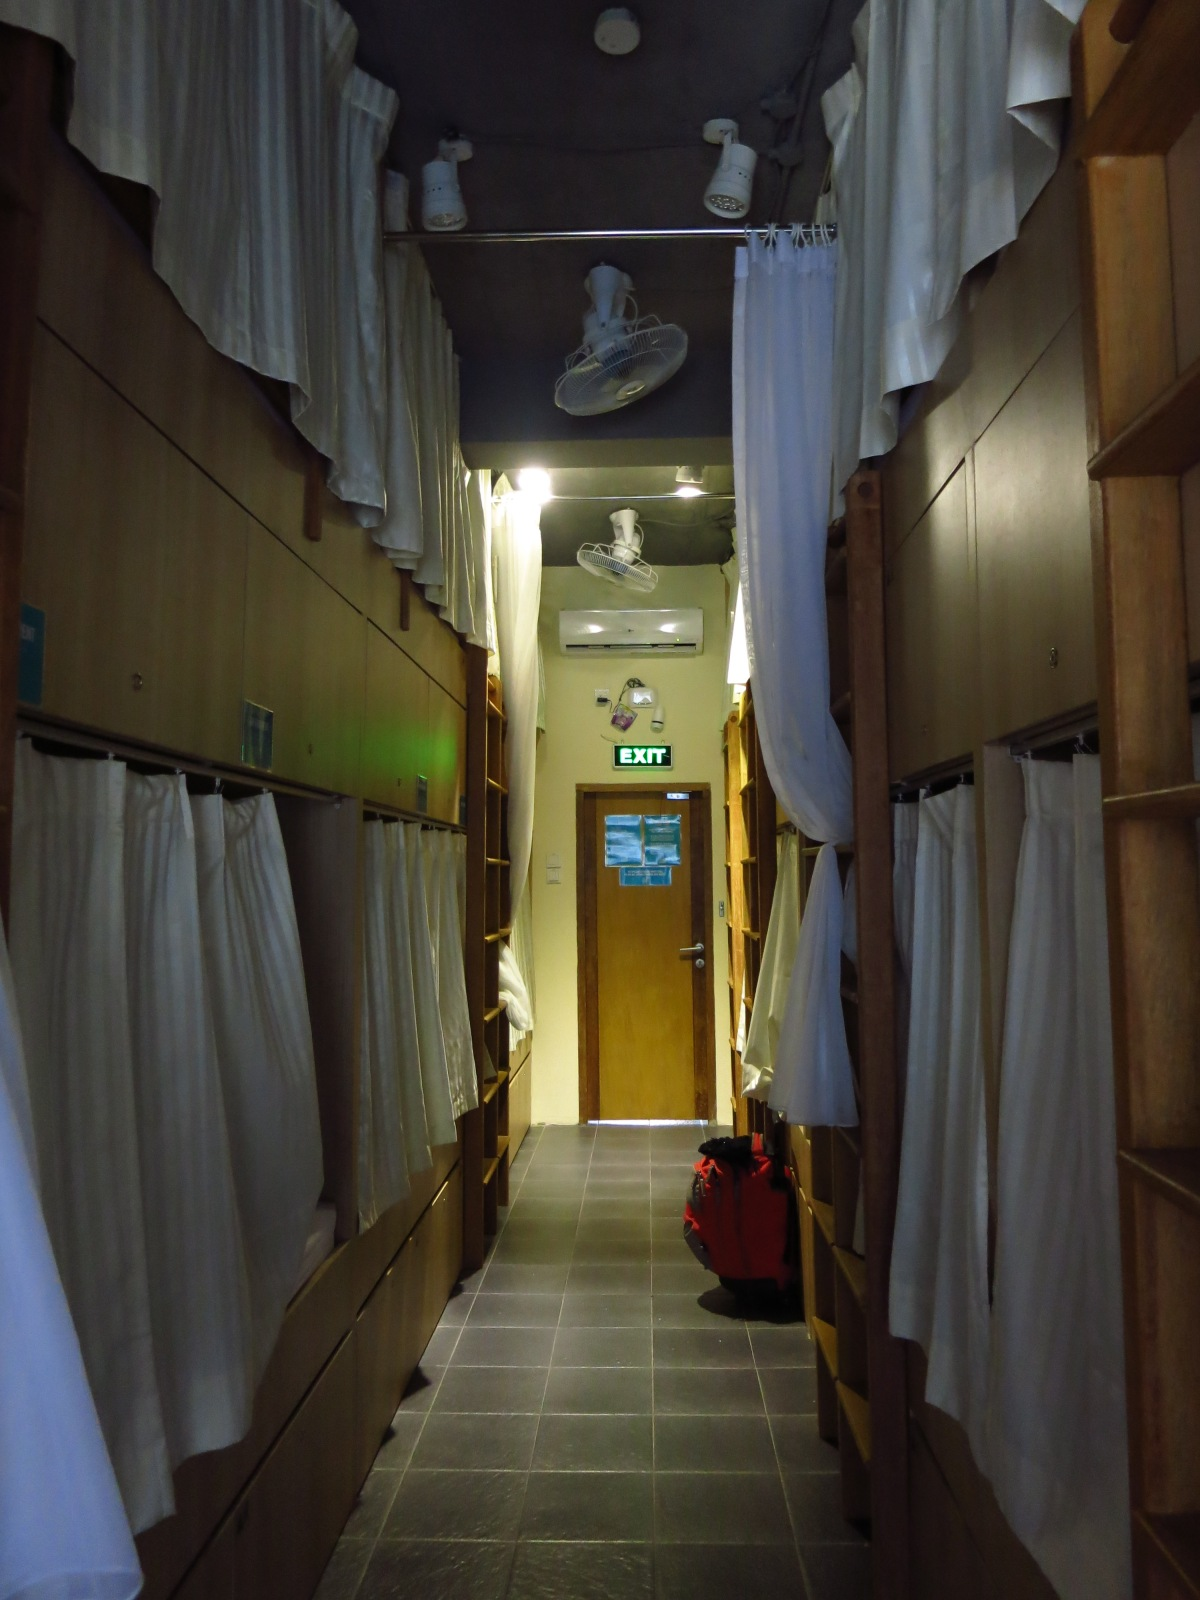 My stay at Teduh Hostel Kota Tua